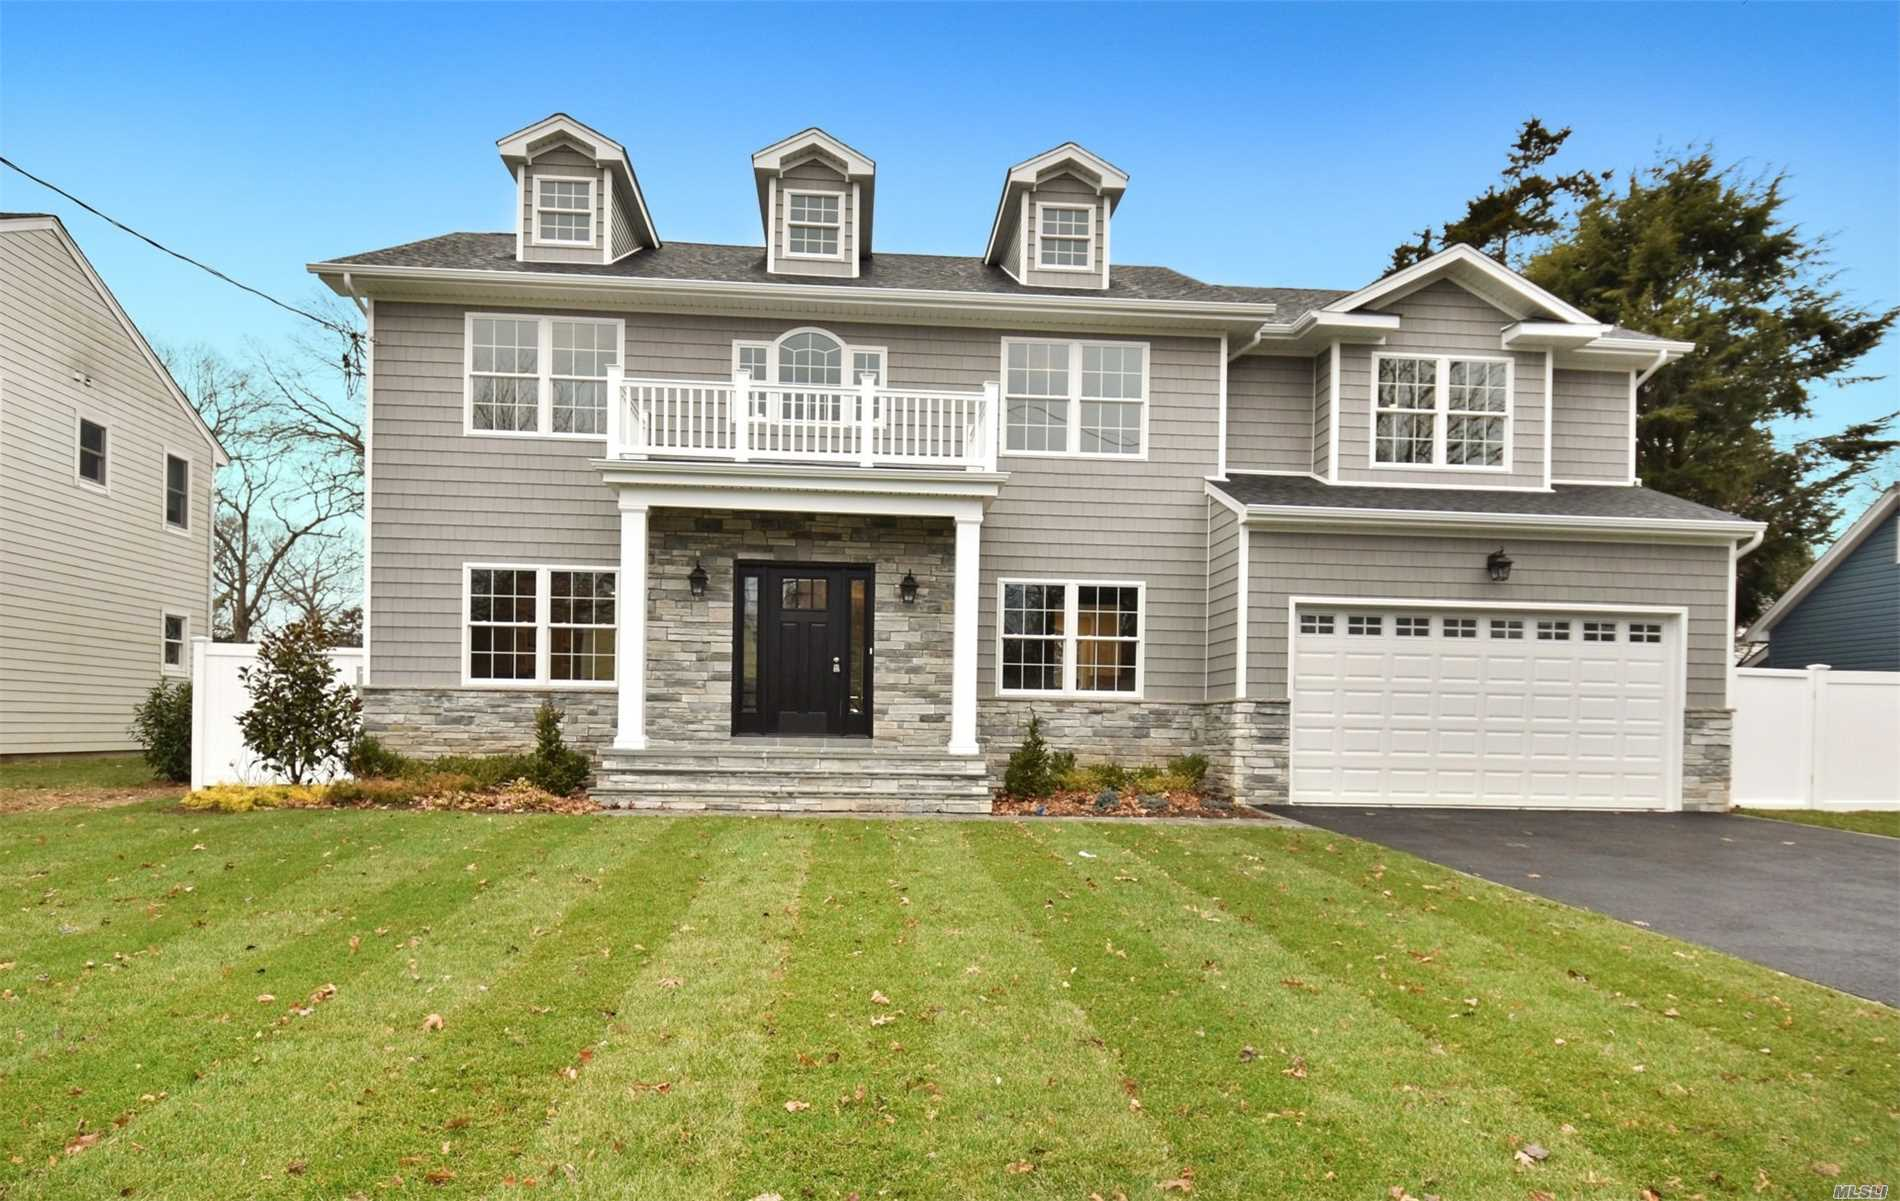 Spectacular Oversized, Park Like Property, North Syosset!! Stunning Sundrenched, 6 Bedroom, 4.5 Bath, Center Hall Colonial, North Syosset, Hw Floors, Gorgeous Gourmet Eik, Elaborate Trim Package, Stones Throw To Town, Rr, Village Elementary.